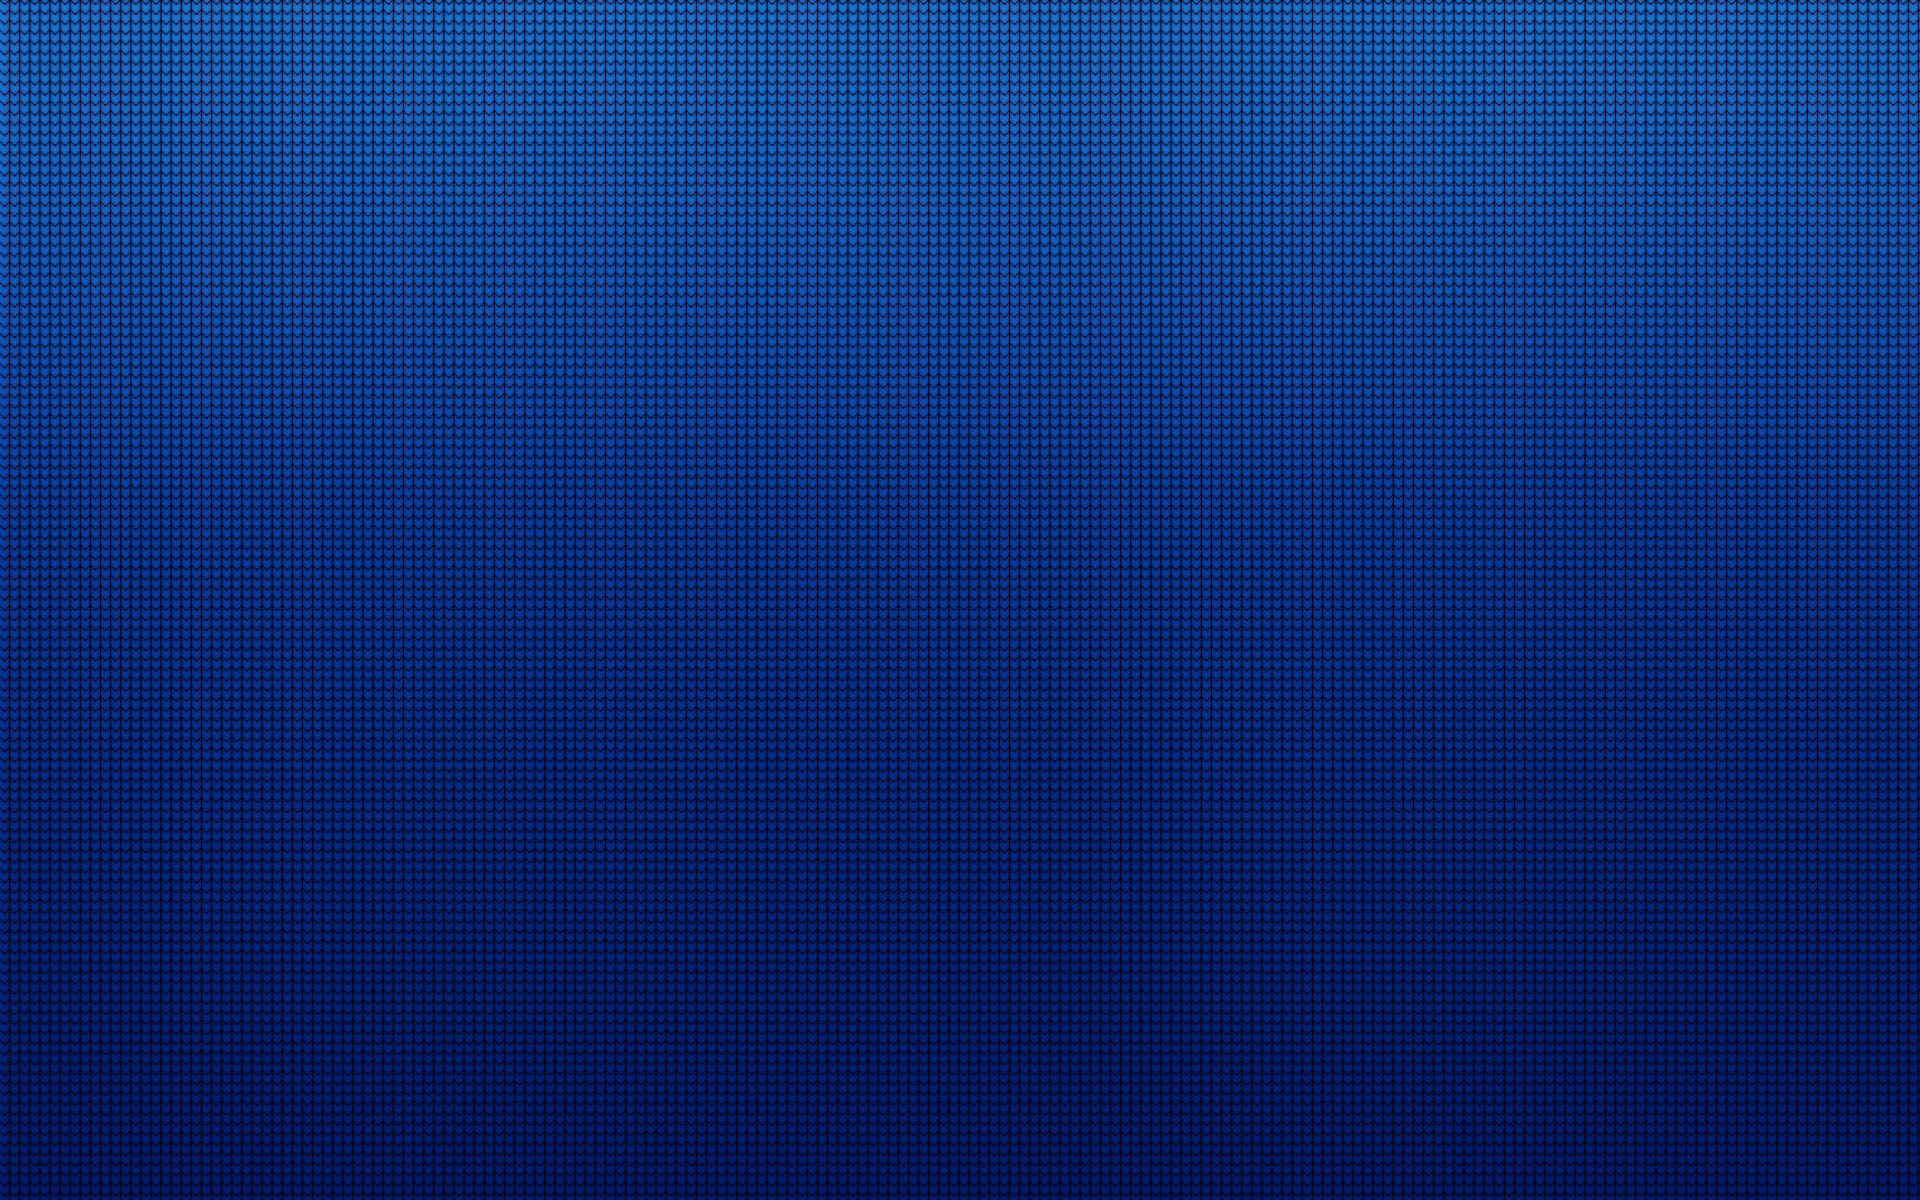 Plain Blue Wallpaper - WallpaperSafari